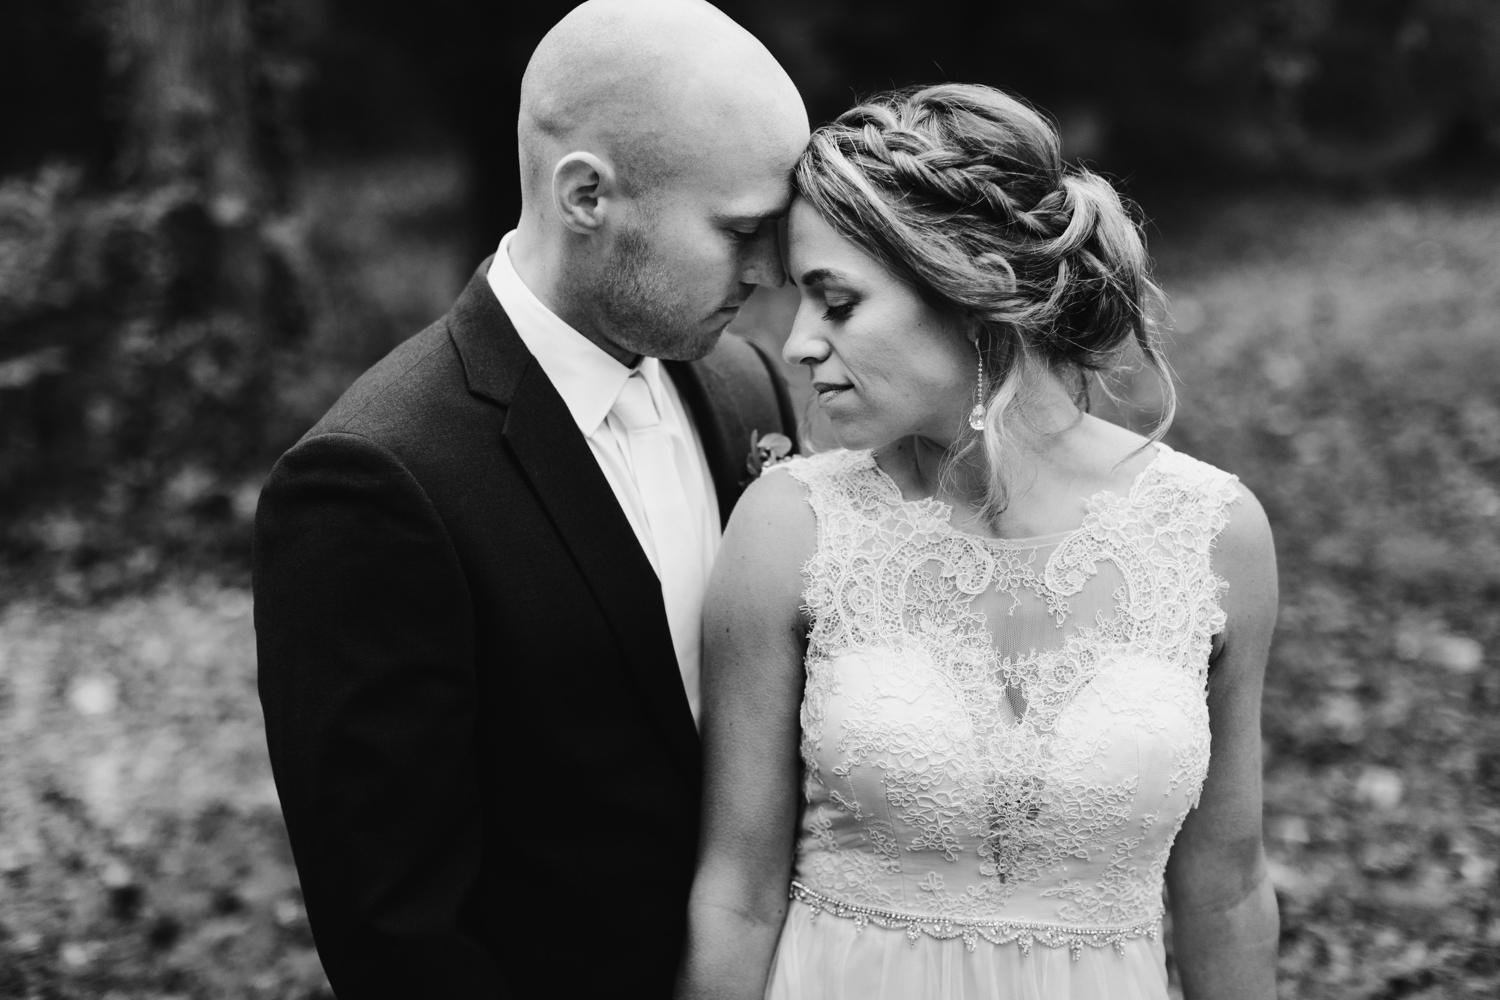 Baltimore wedding photographer outdoor Maryland wedding ceremony   forest earthy Annapolis wedding   outdoor bride and groom portraits